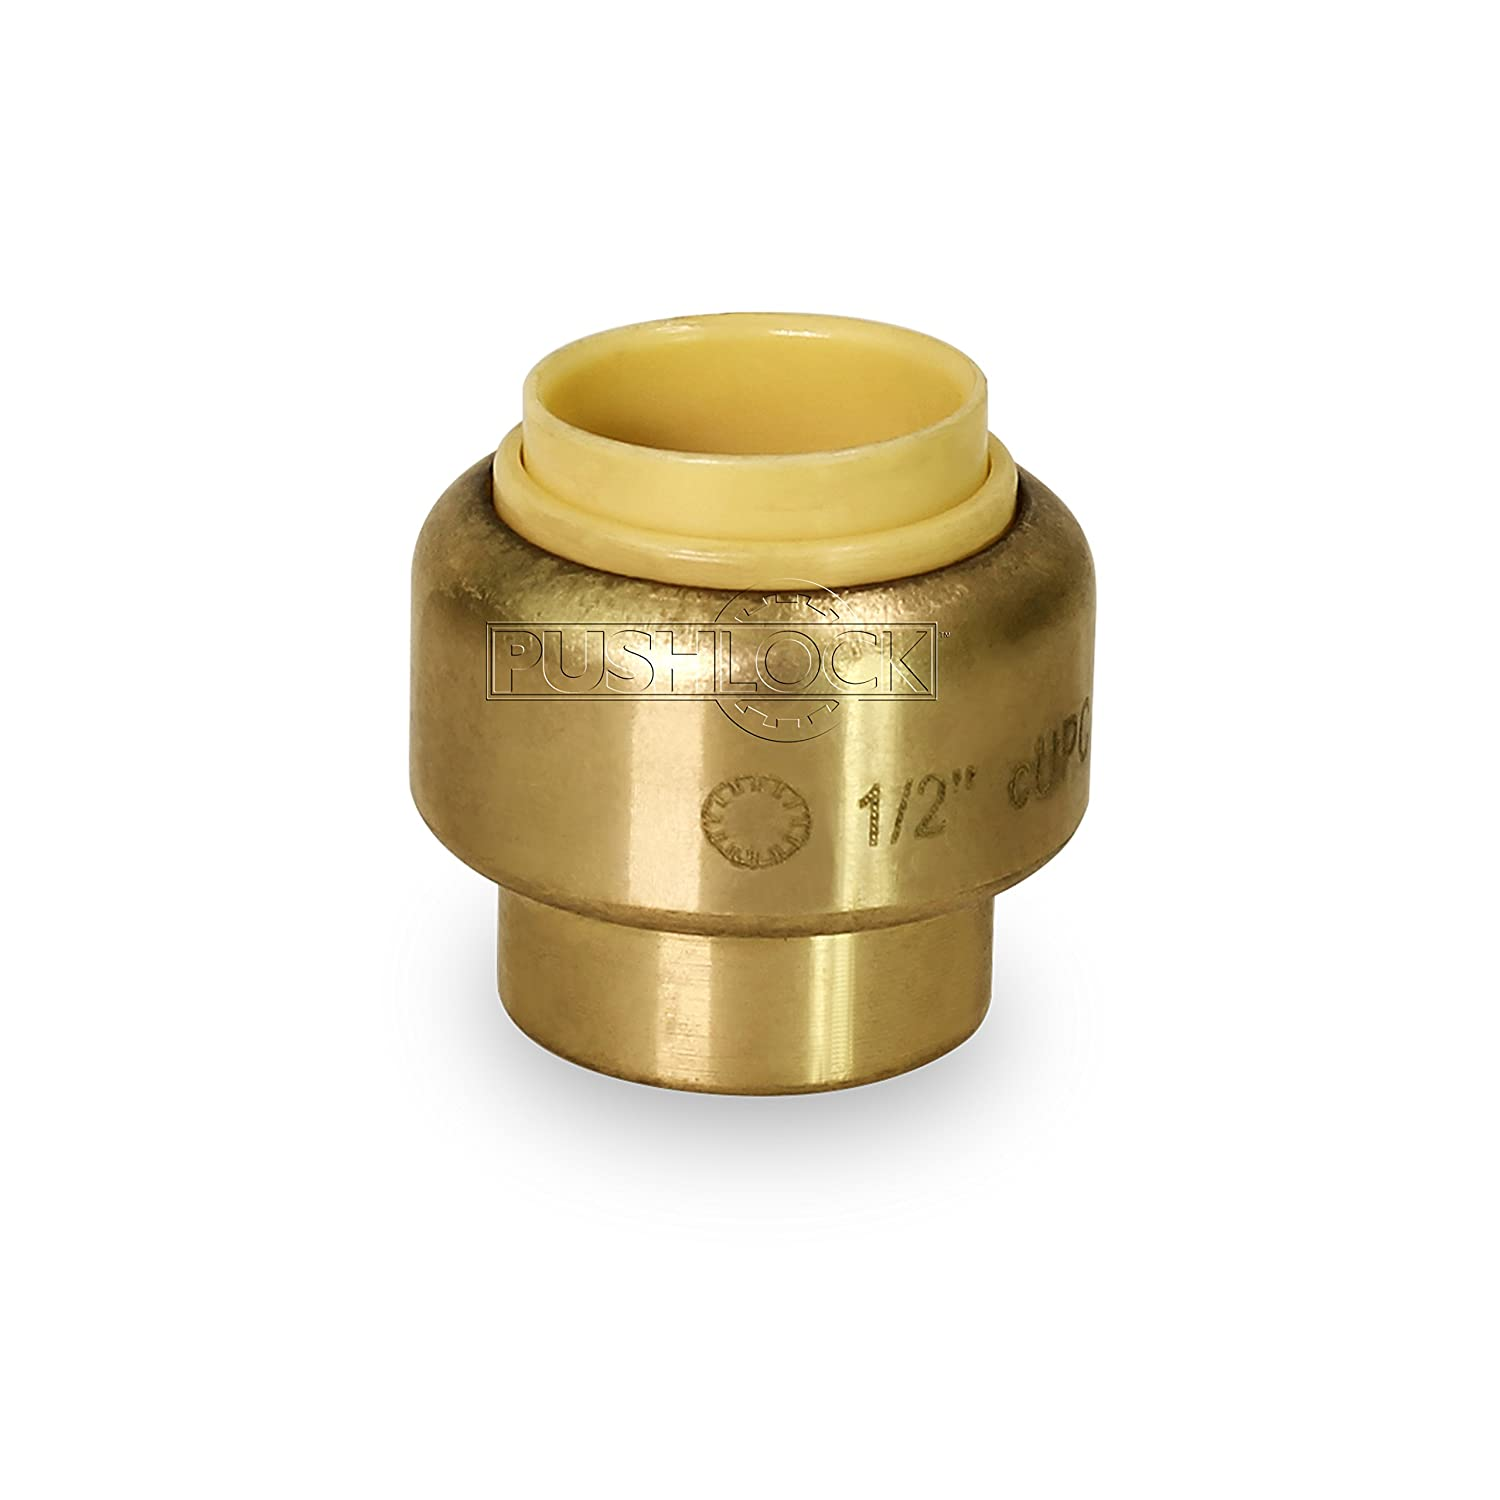 1//2 Inch Brass Pack of 5 Everflow CPVC Pushlock UPSE12-5 Plug End Cap Pipe Fitting Push to Connect Pex Copper